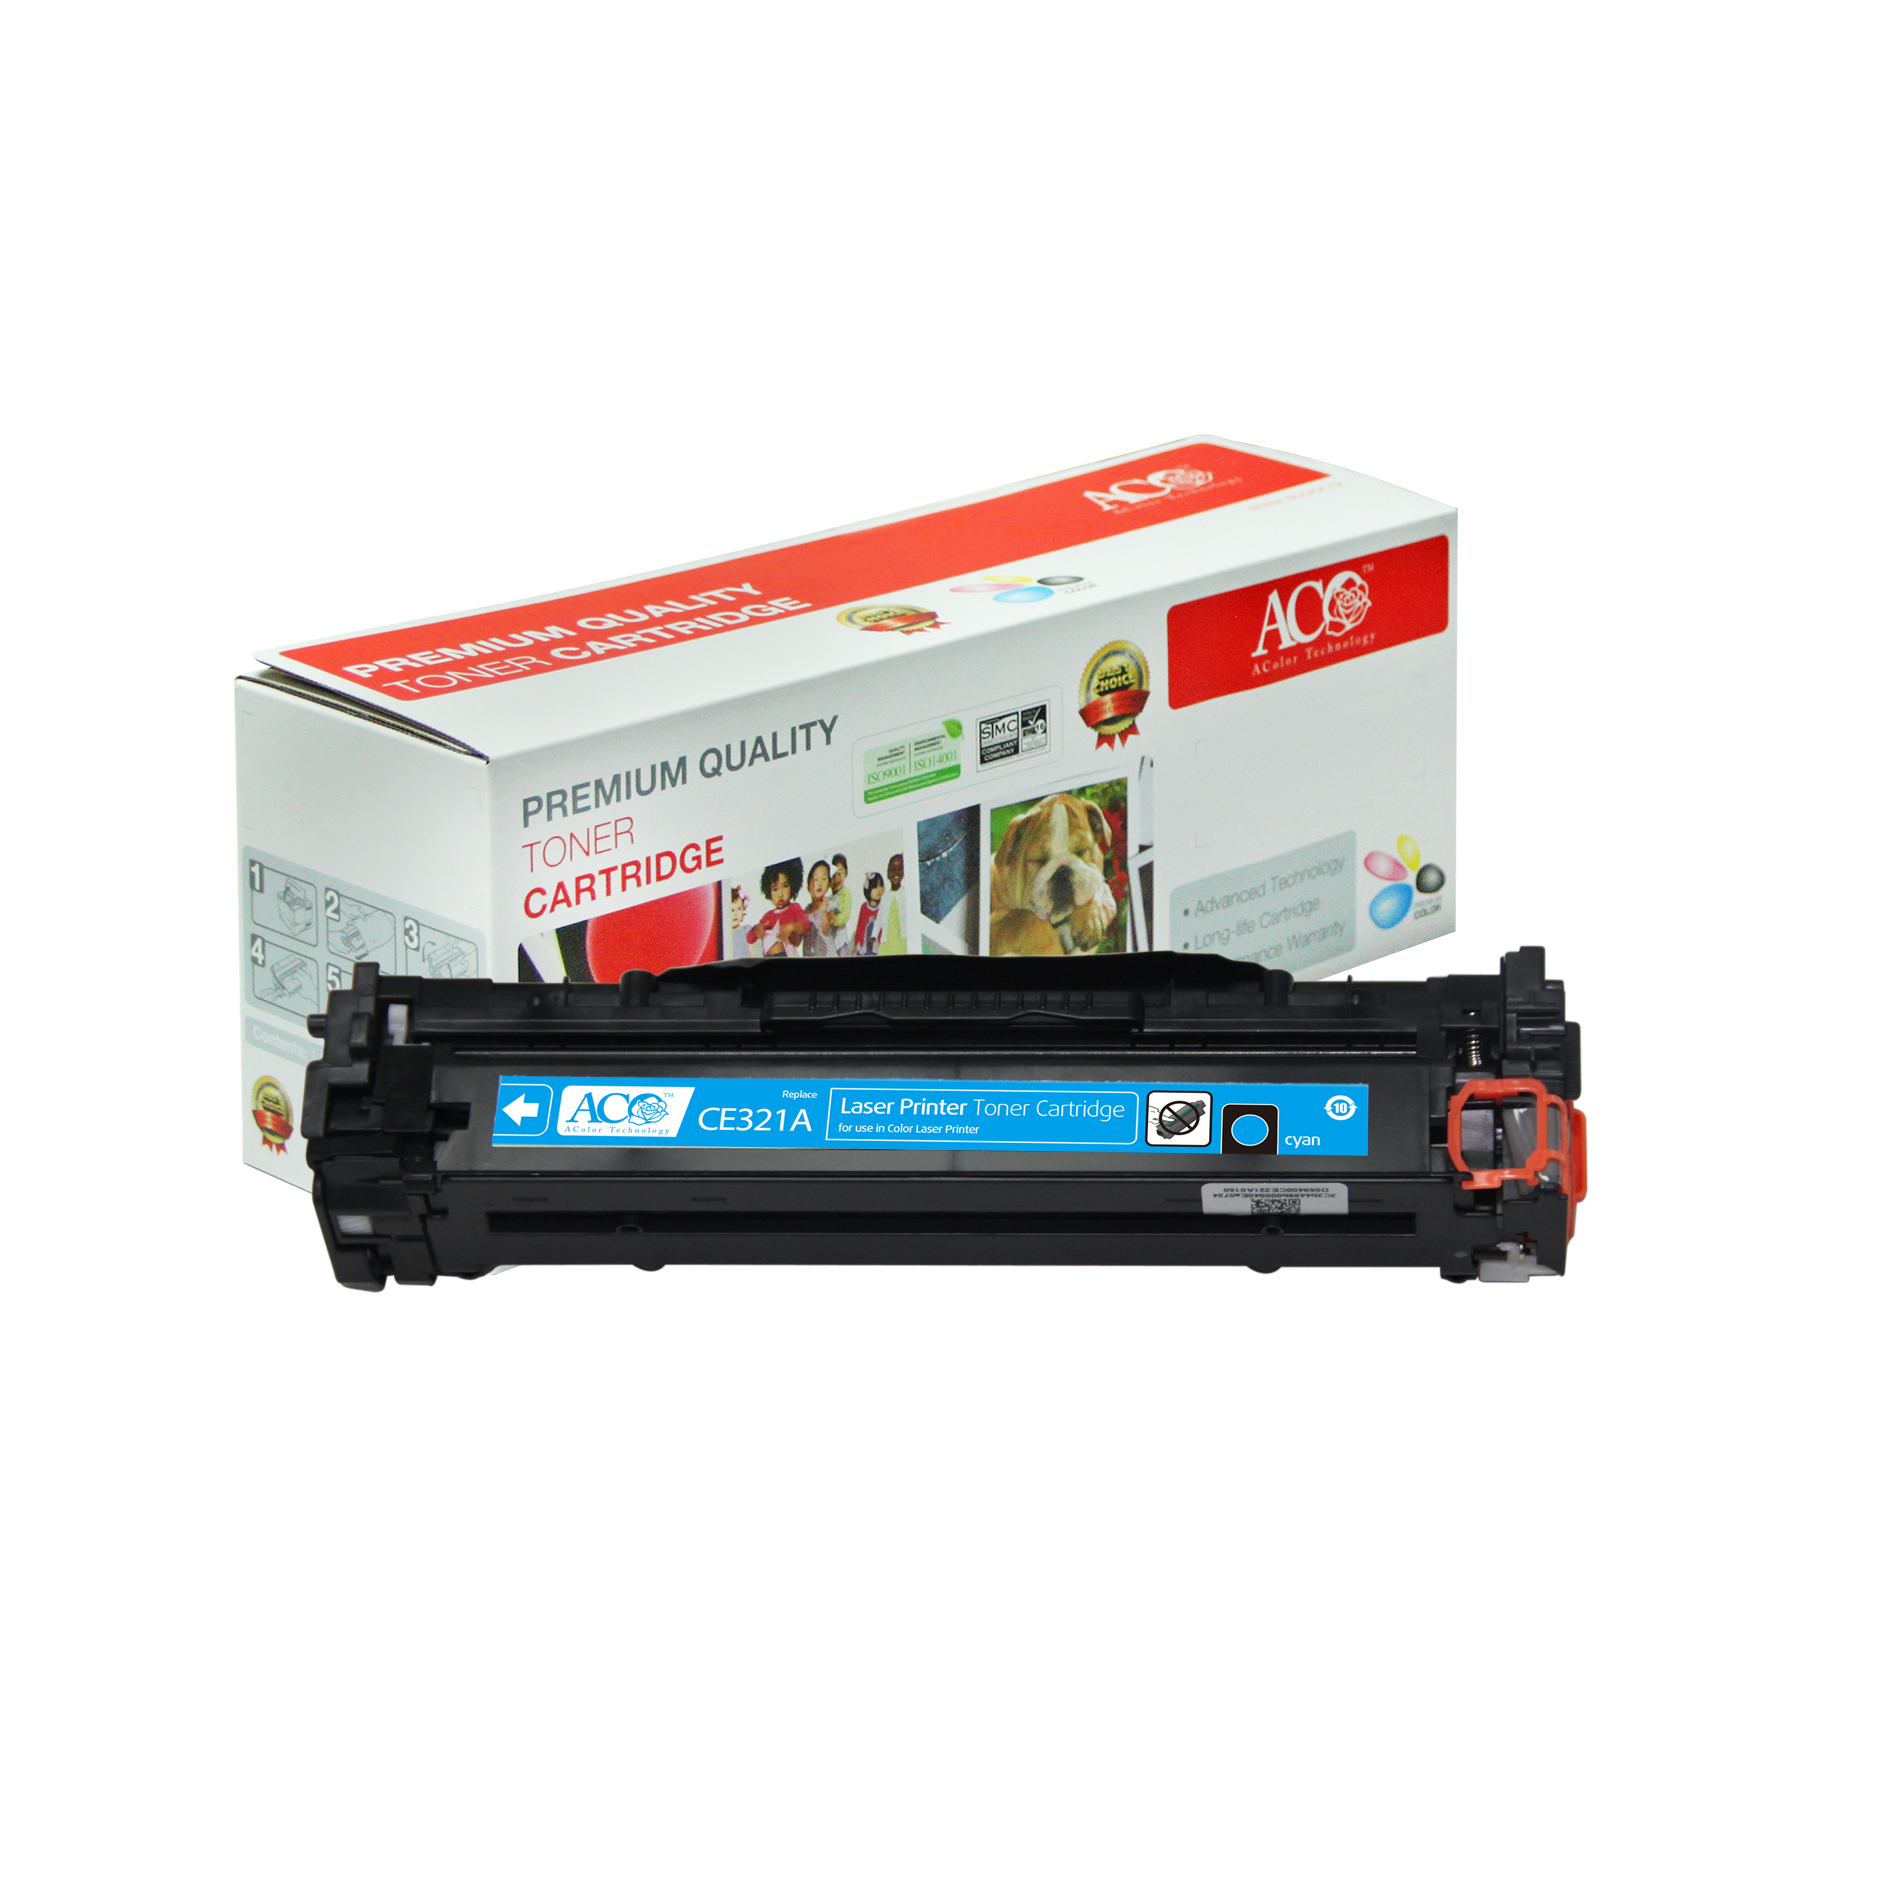 Compatible Color Toner Cartridge for HP CE320A CE321A CE322A CE323A(CP1525n CP1525nw CM1415fnw)